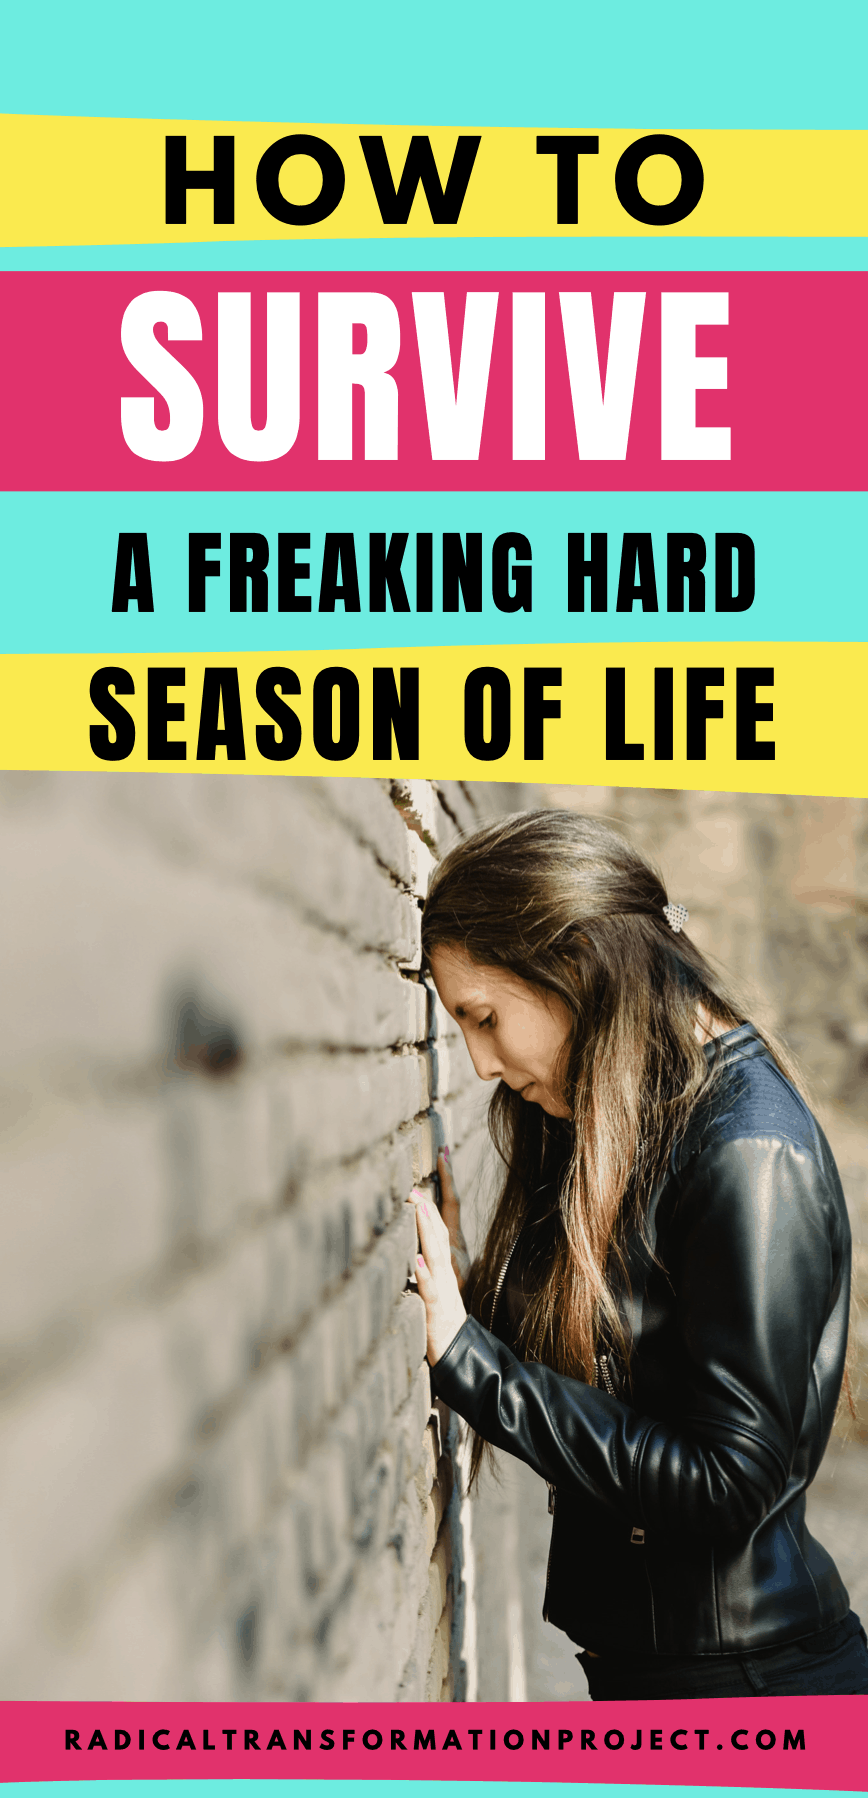 How To Survive A Freaking Hard Season of Life